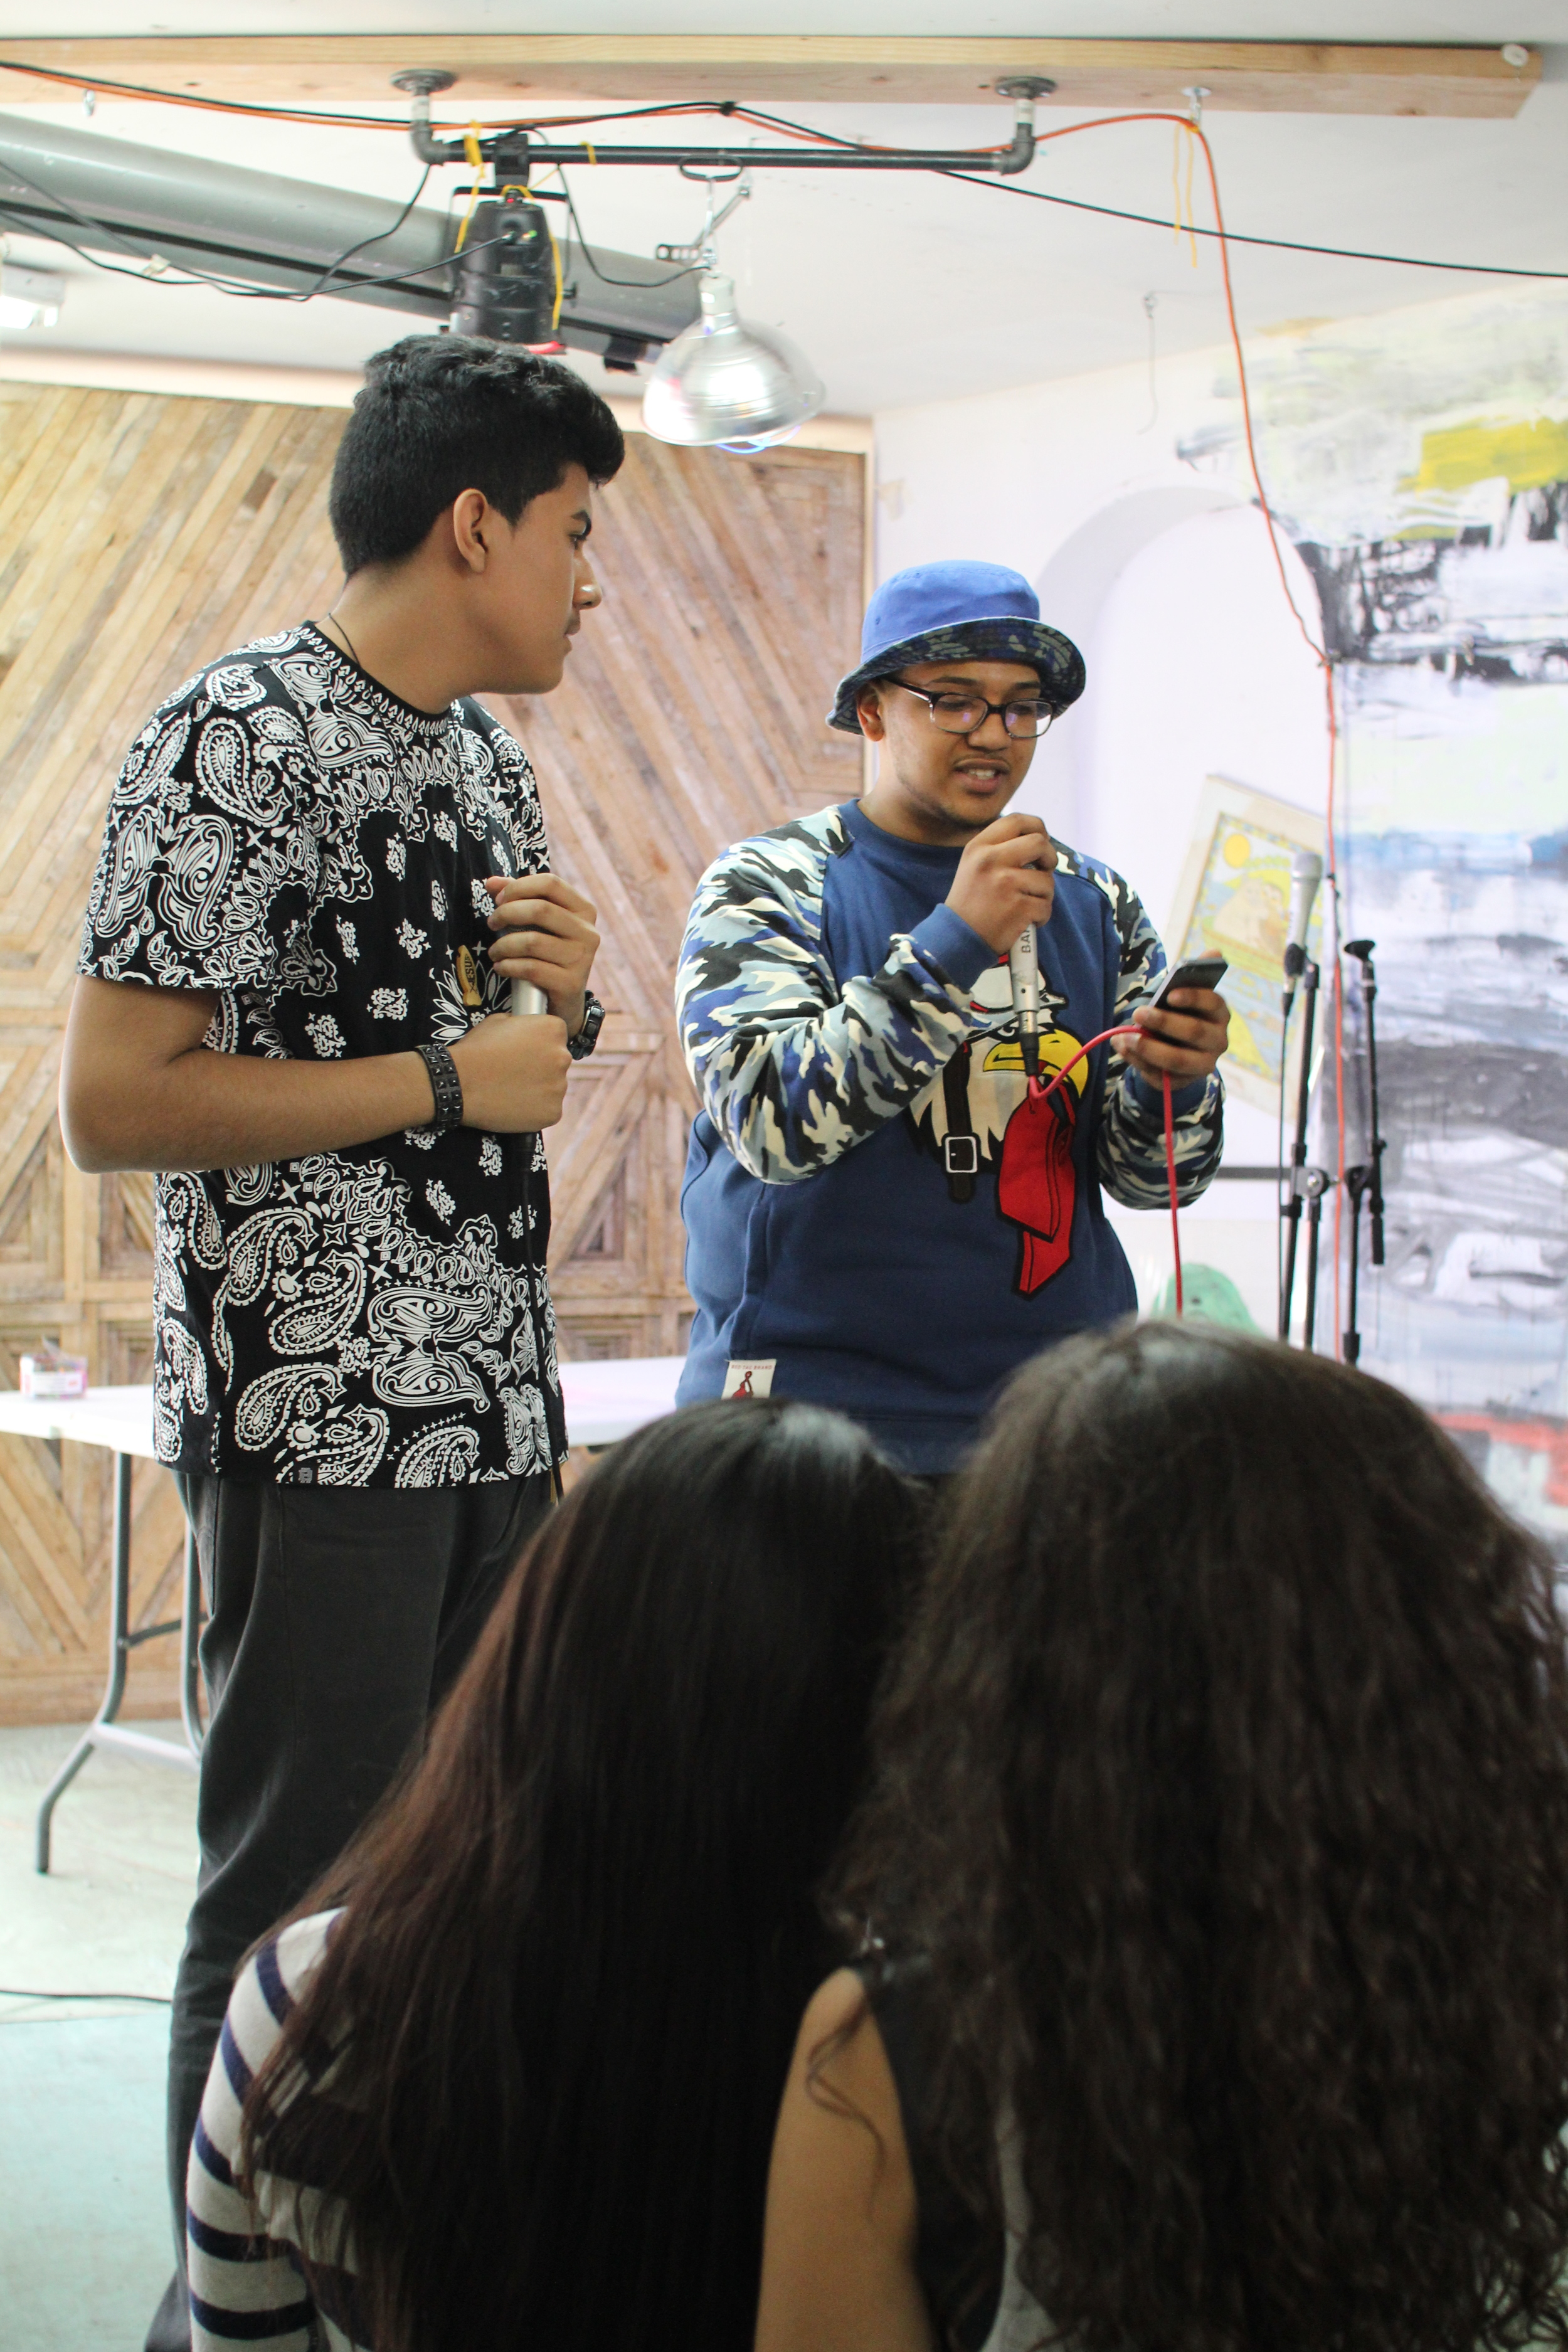 ELM youth on the mic. Photo credit Andrew McFarland.